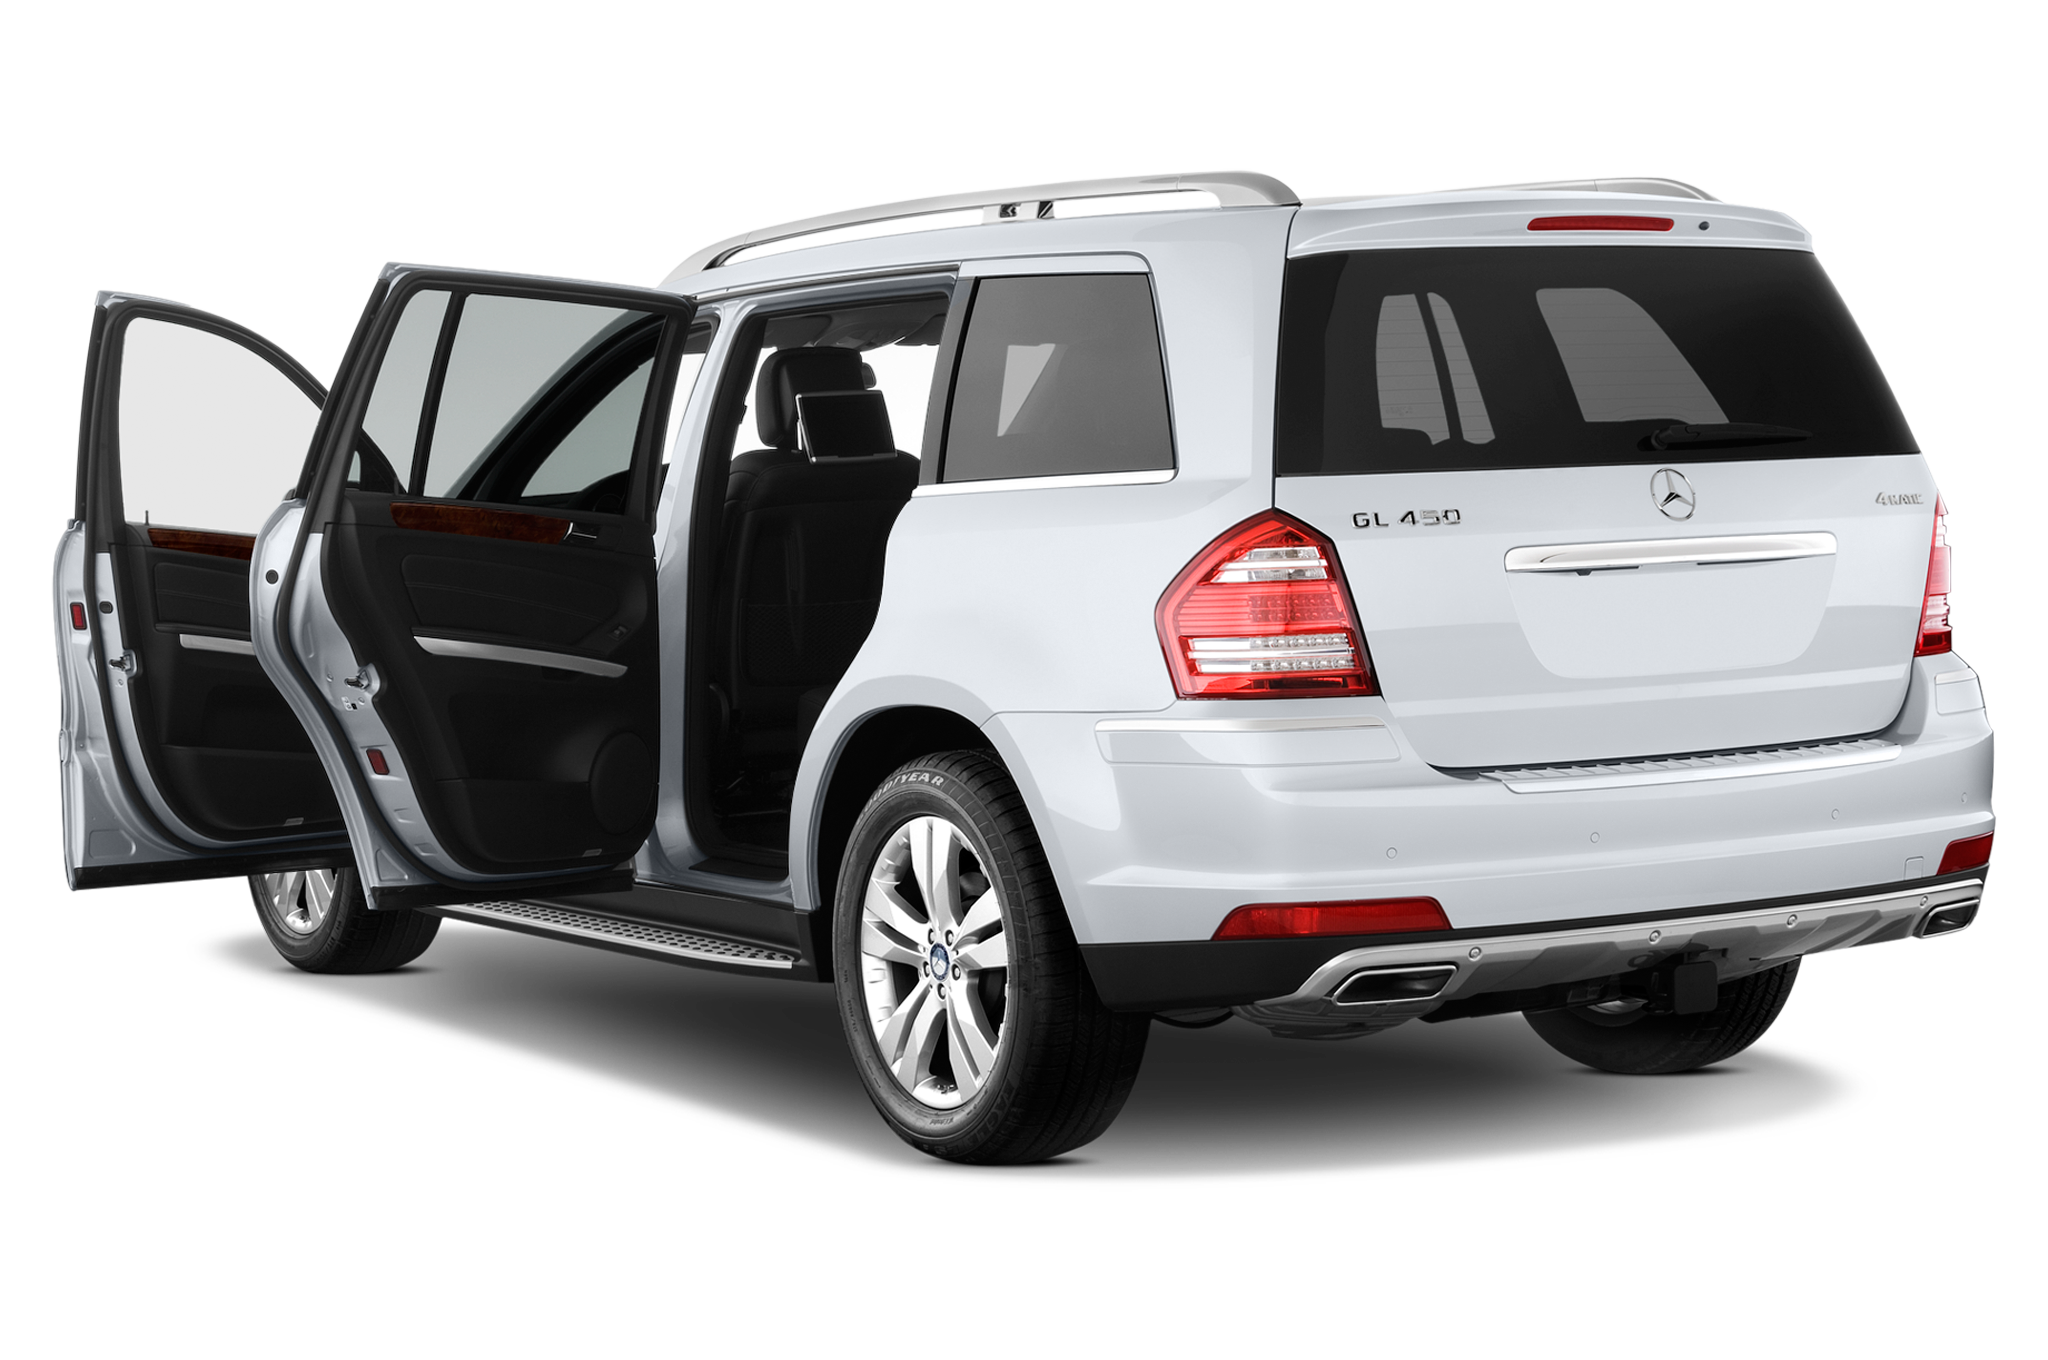 Grand exit mercedes benz introduces gl class grand for Mercedes benz europe